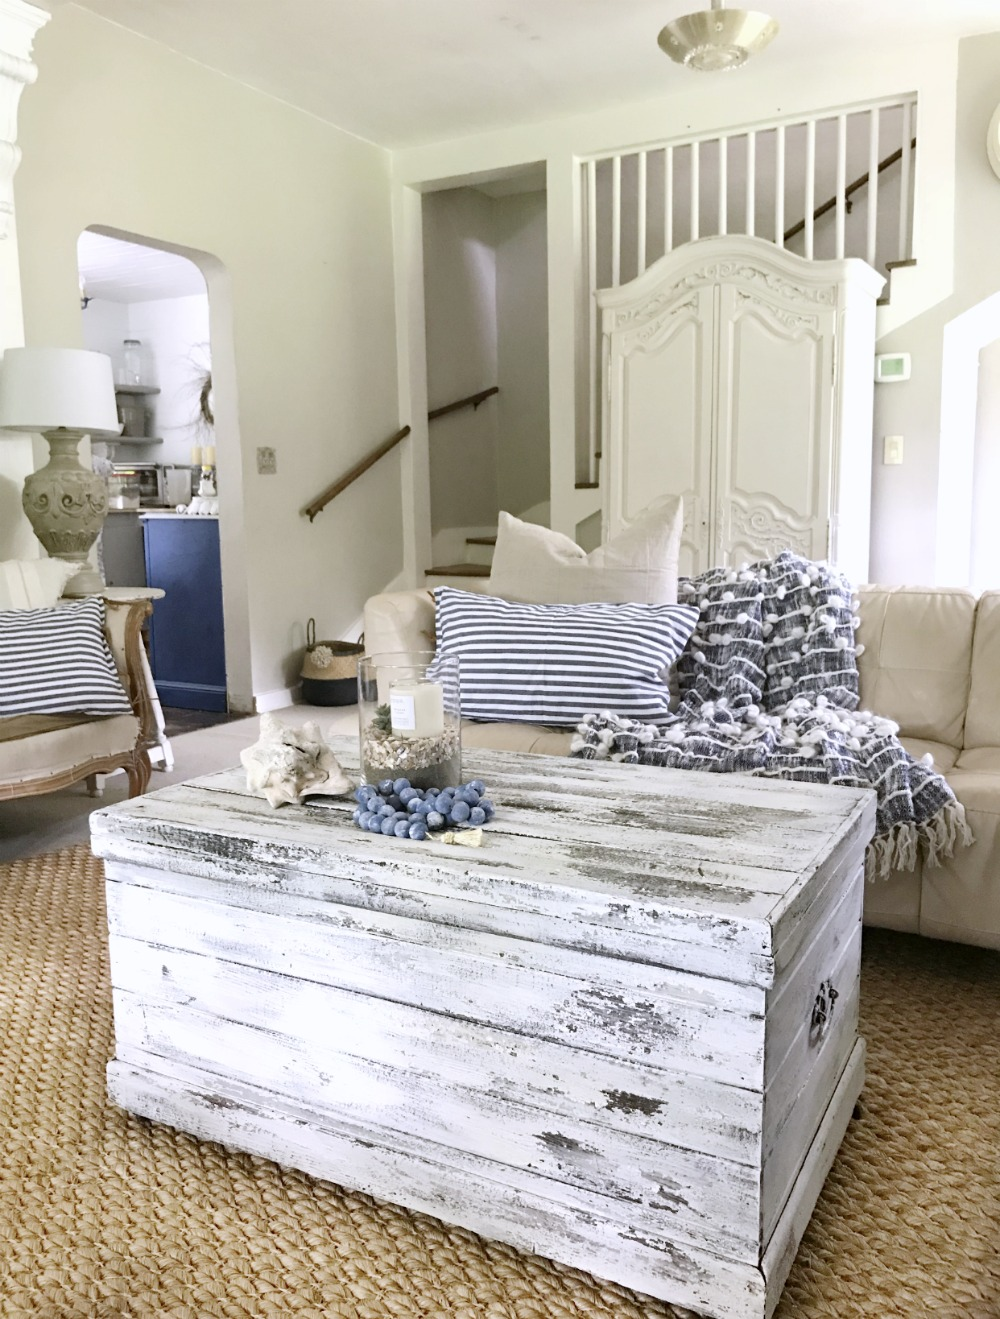 My Secrets to Milk Painting Furniture the Easy Way